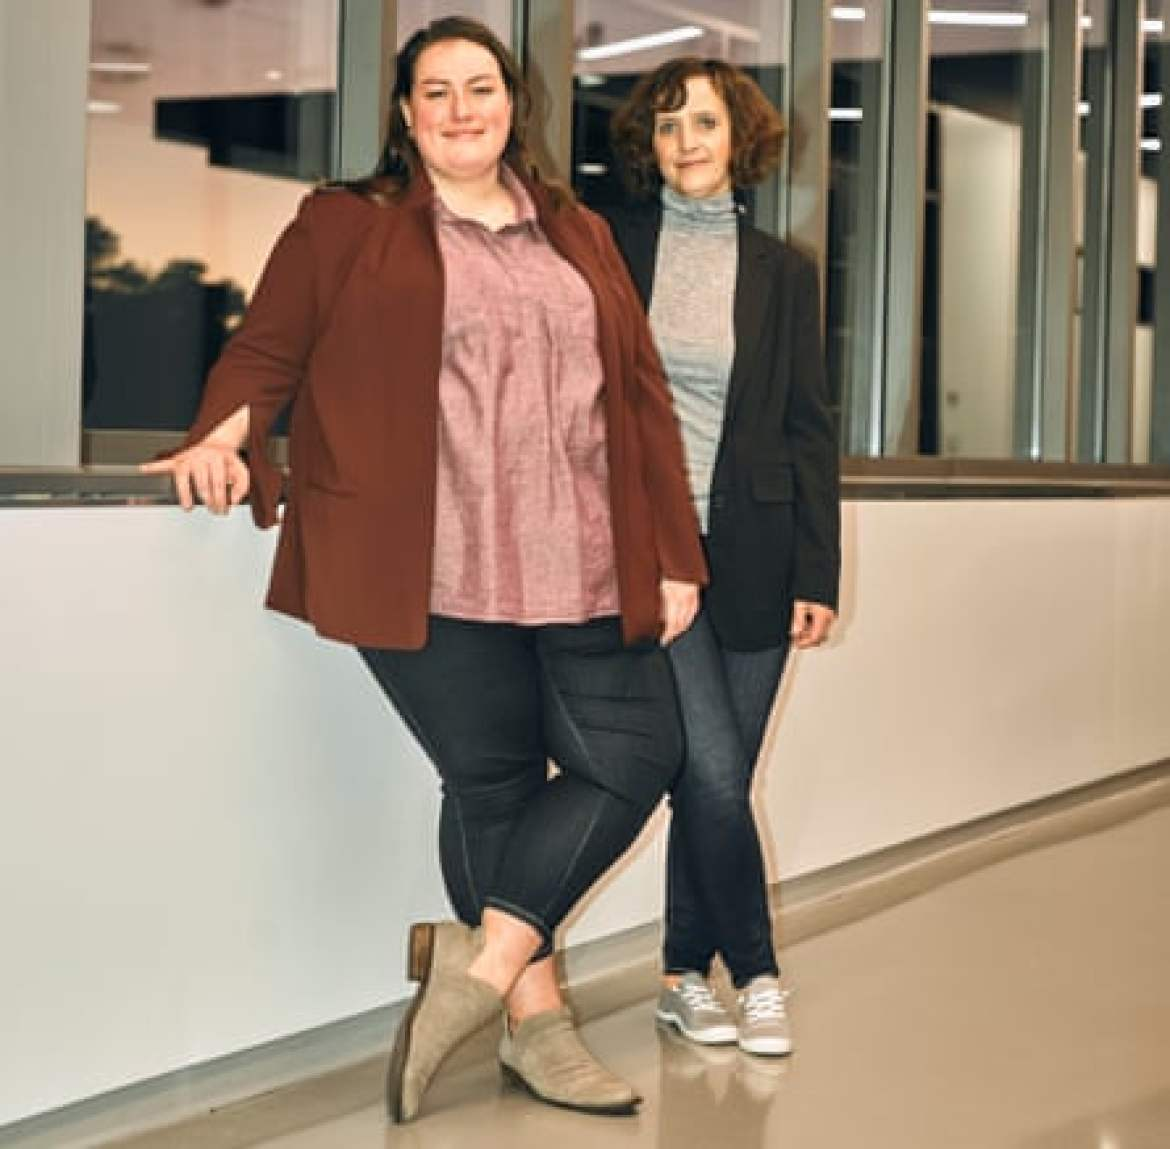 Biomilq co-founders Michelle Egger (left) and Leila Strickland